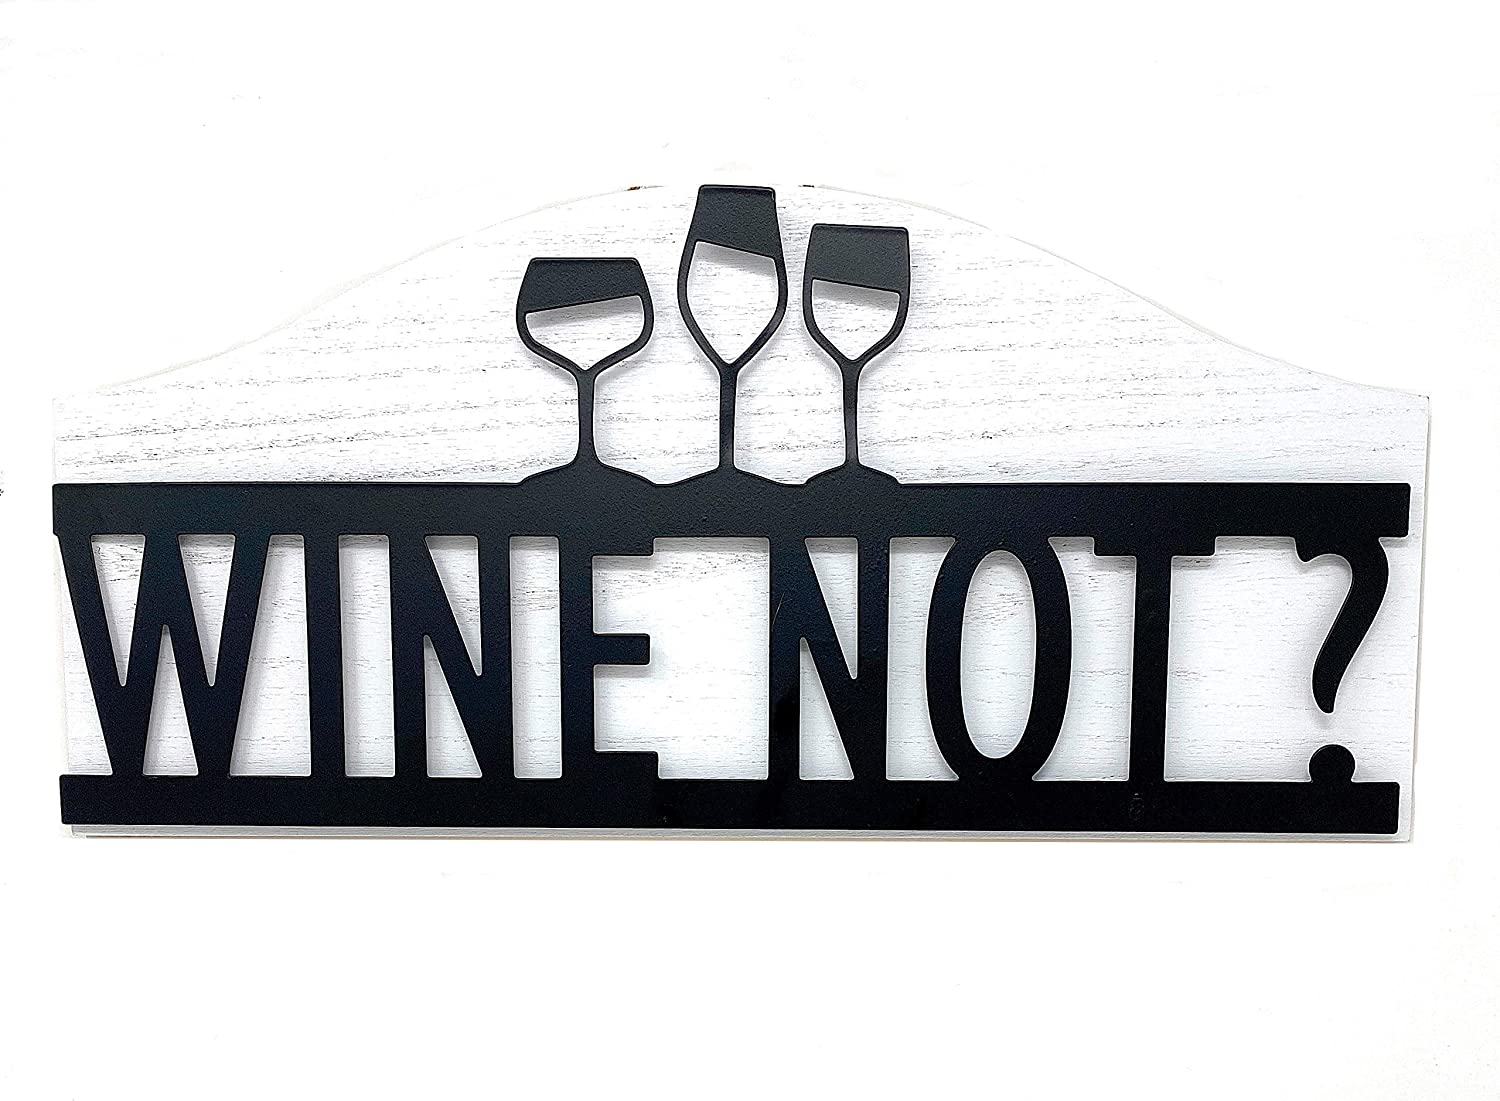 Wine Not? Sign Decor Room Wall Metal Wood Black & White Modern Accents Accessory 16